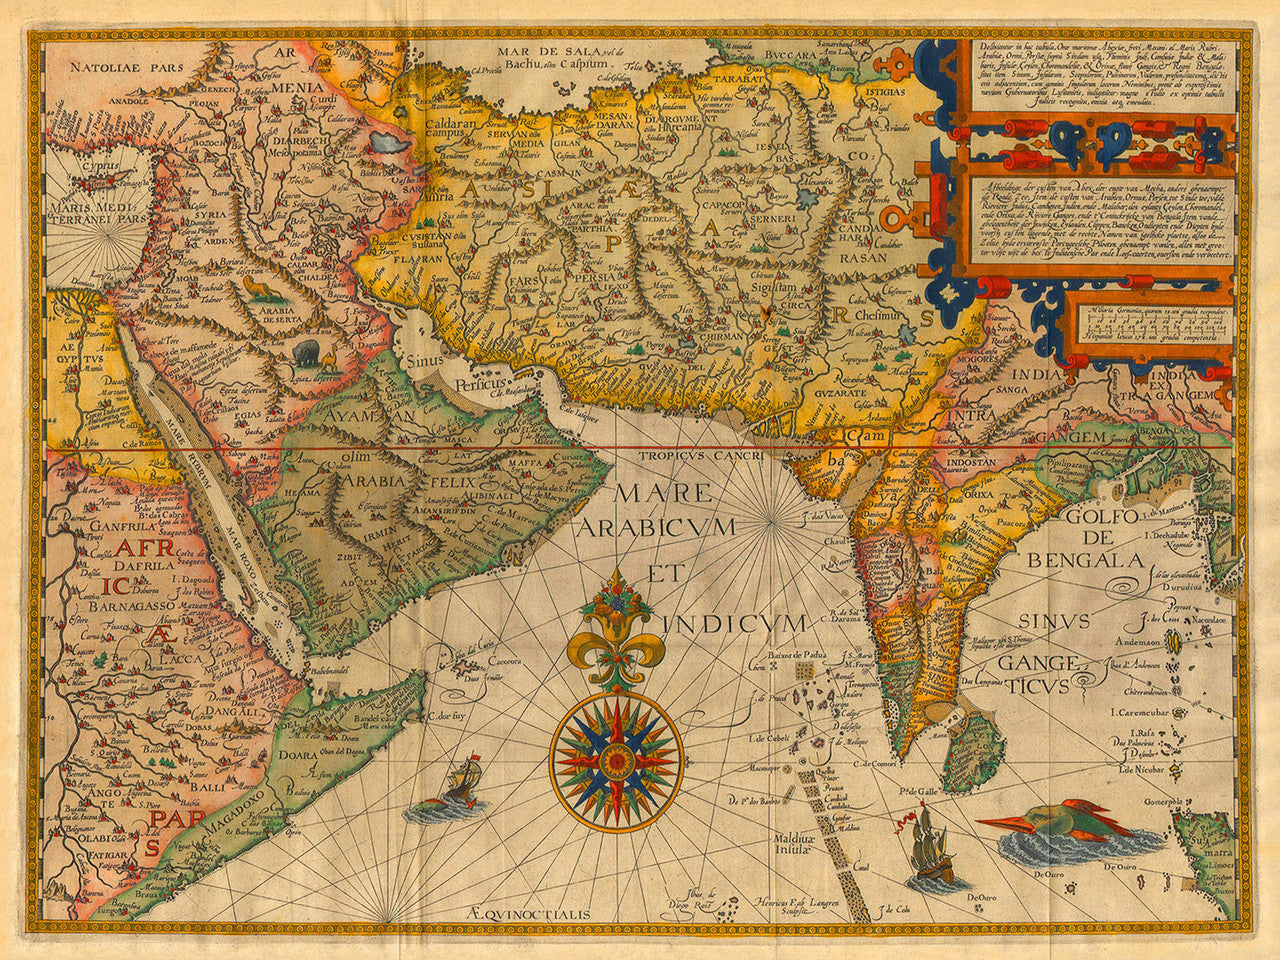 Map Of Asia India.Indian Ocean 1596 Asia India Linschoten Antique Map